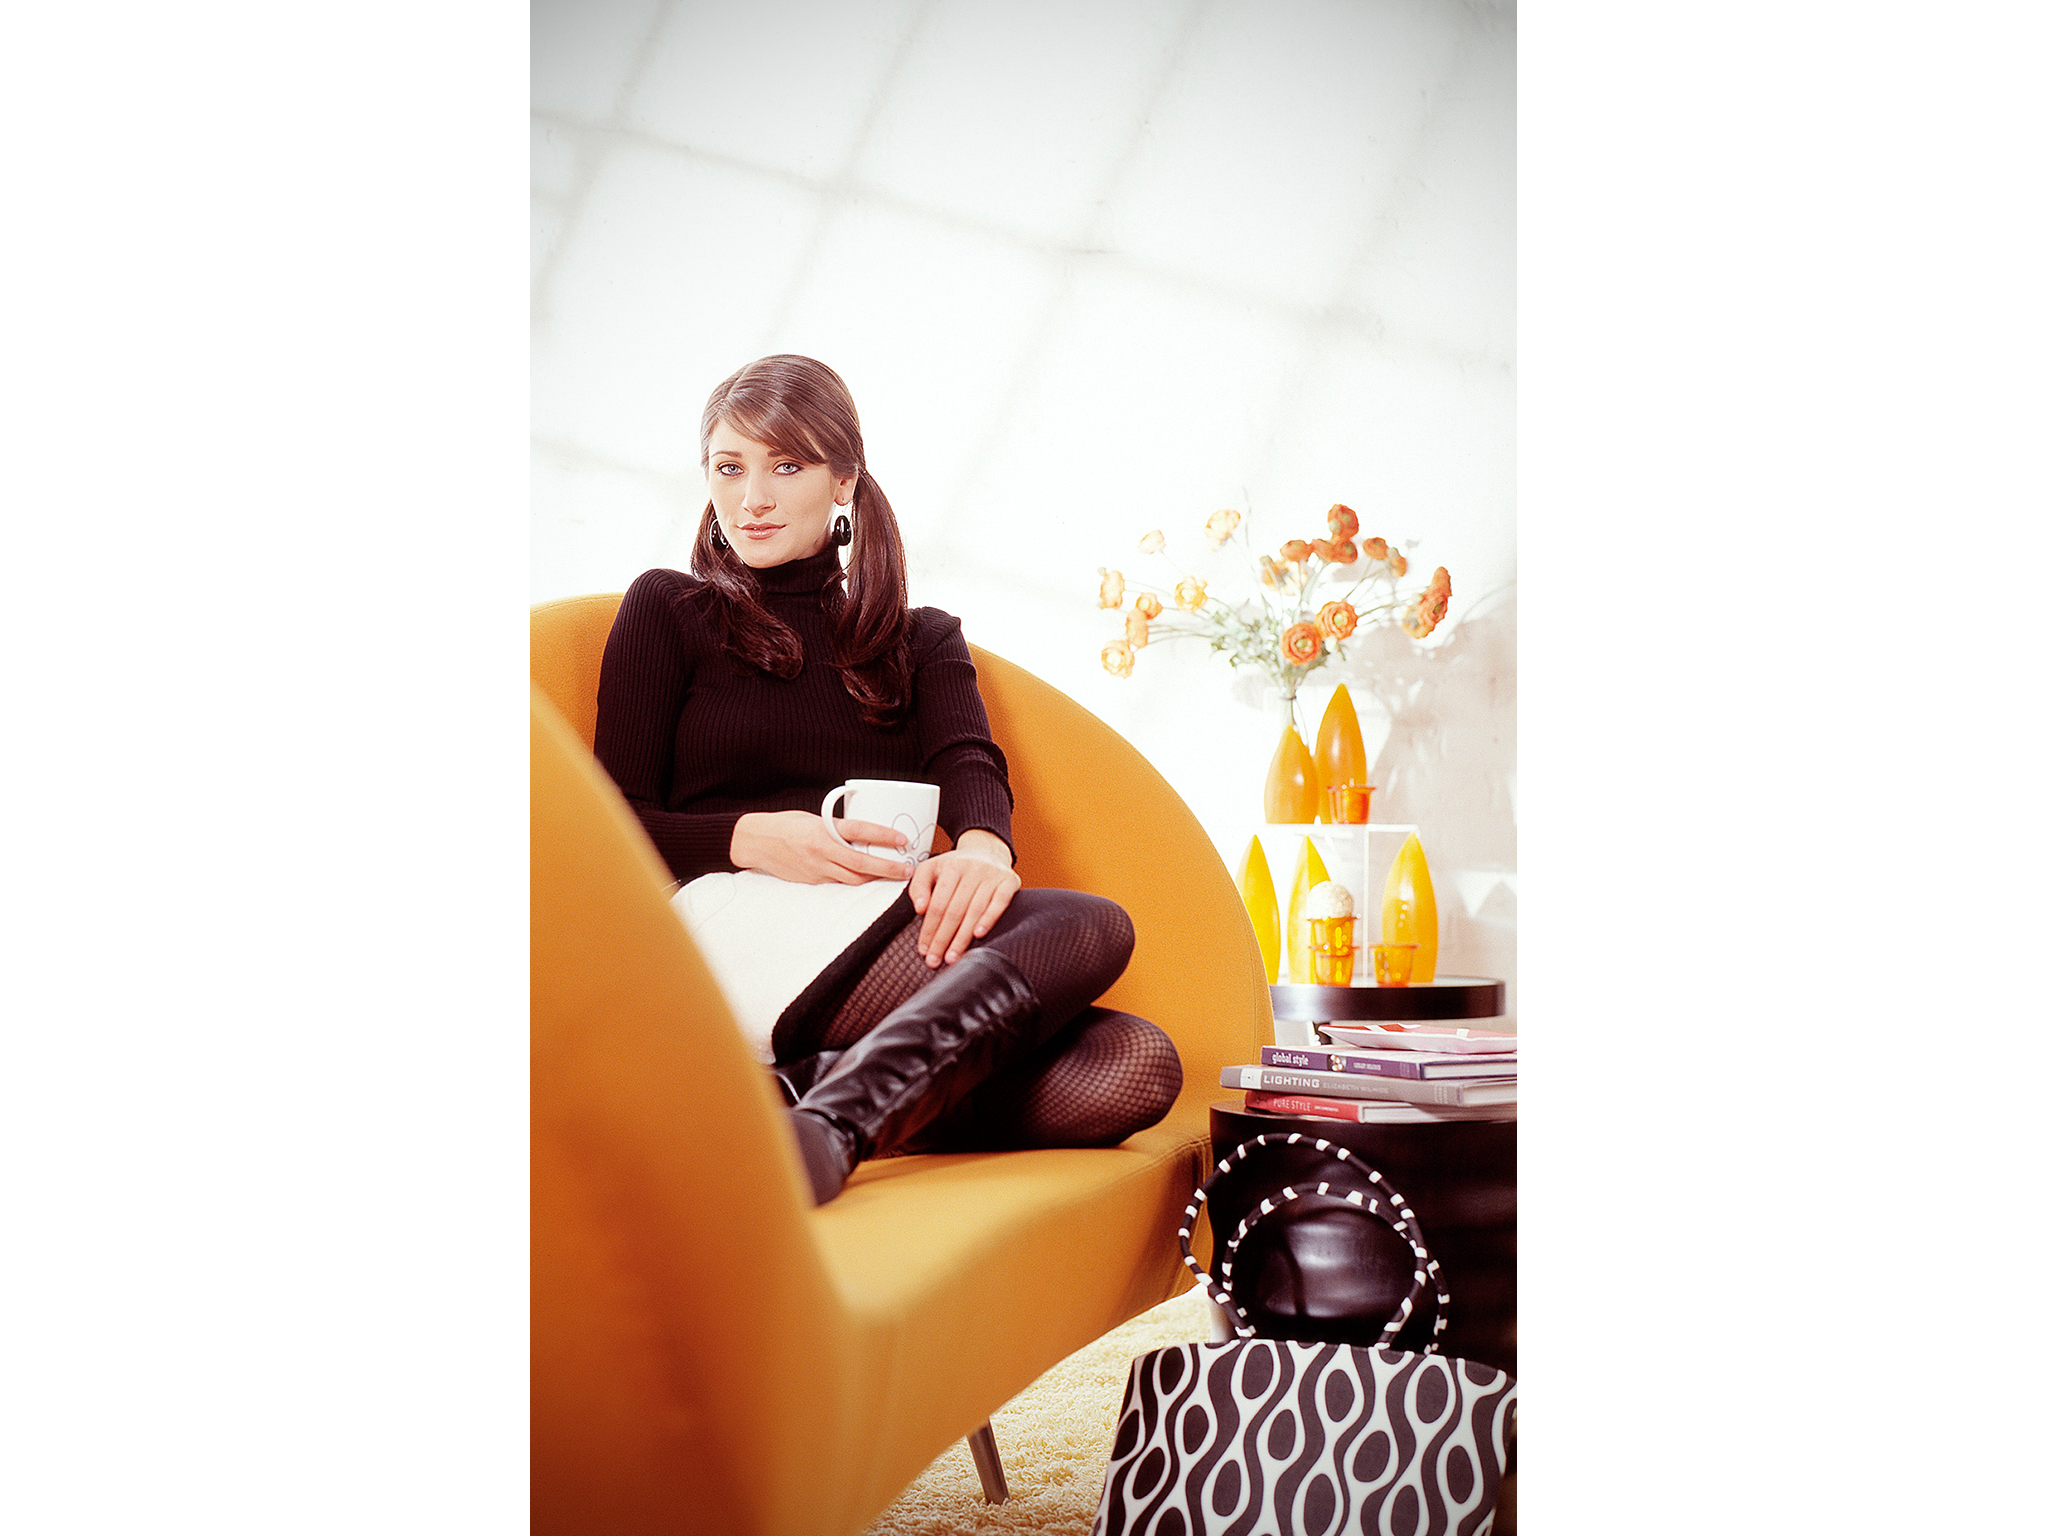 Woman drinking coffee on modern orange couch for coffee maker ad